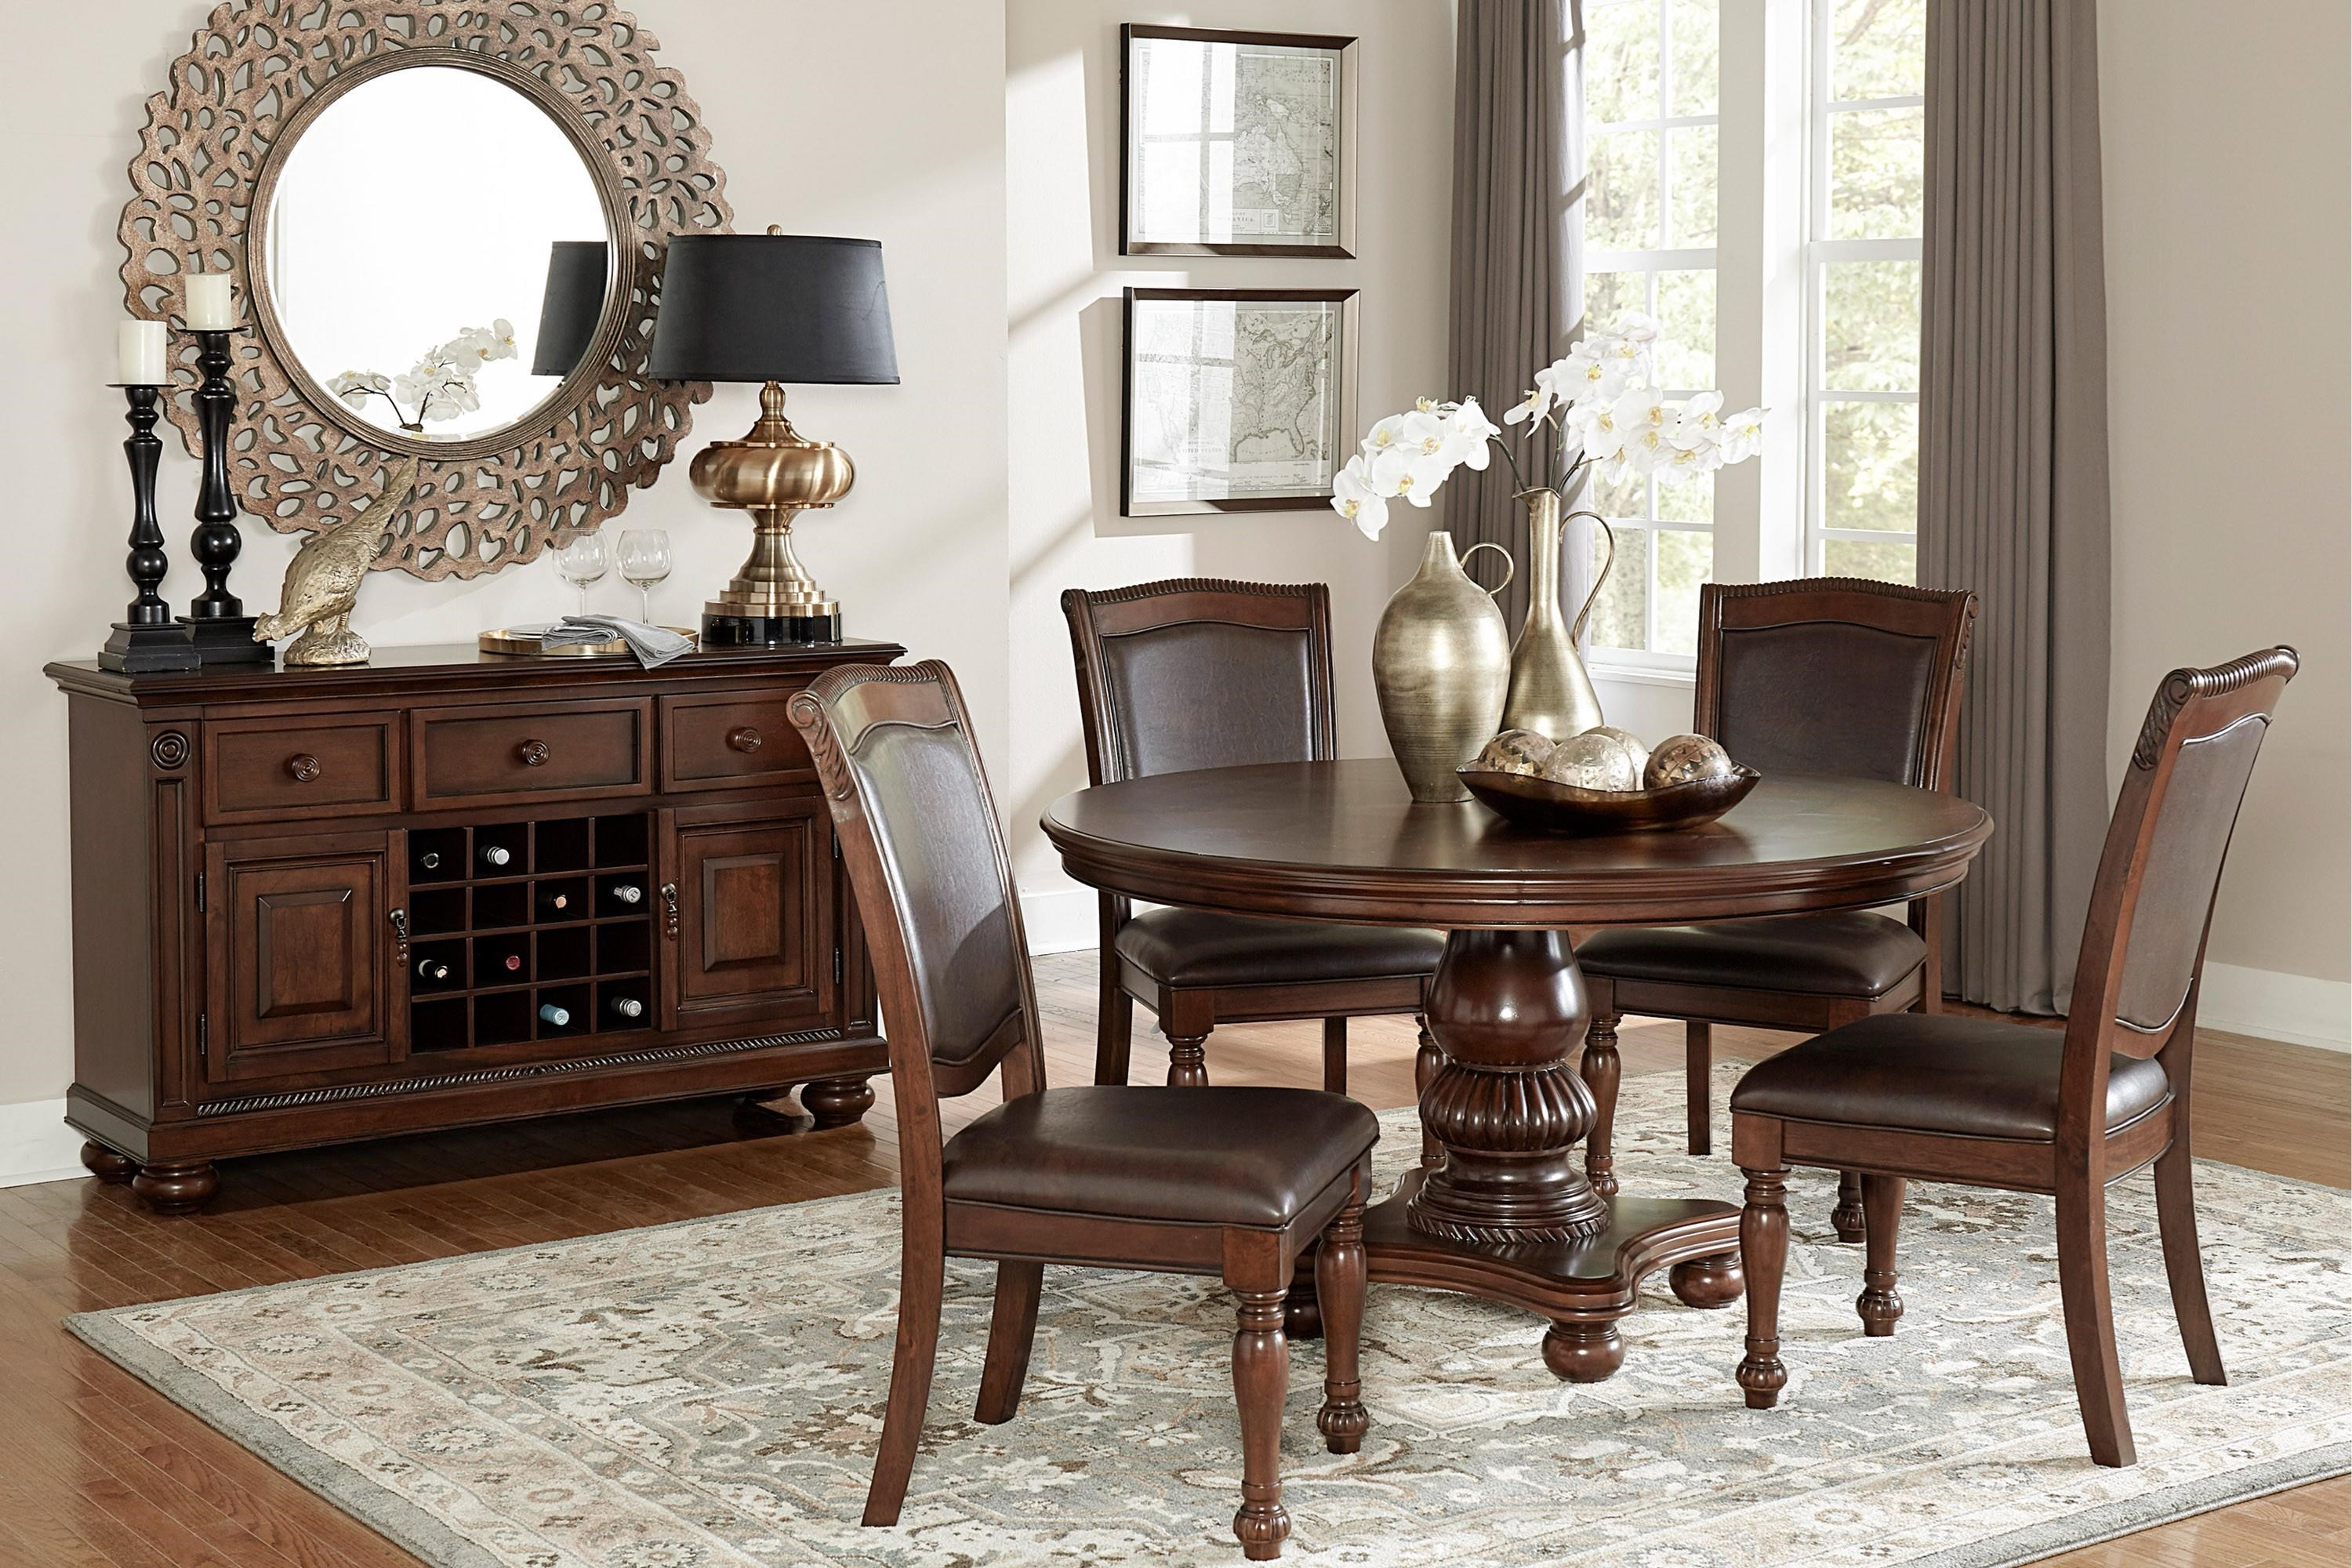 Lordsburg 5-Piece Table and Chair Set by Homelegance at Beck's Furniture